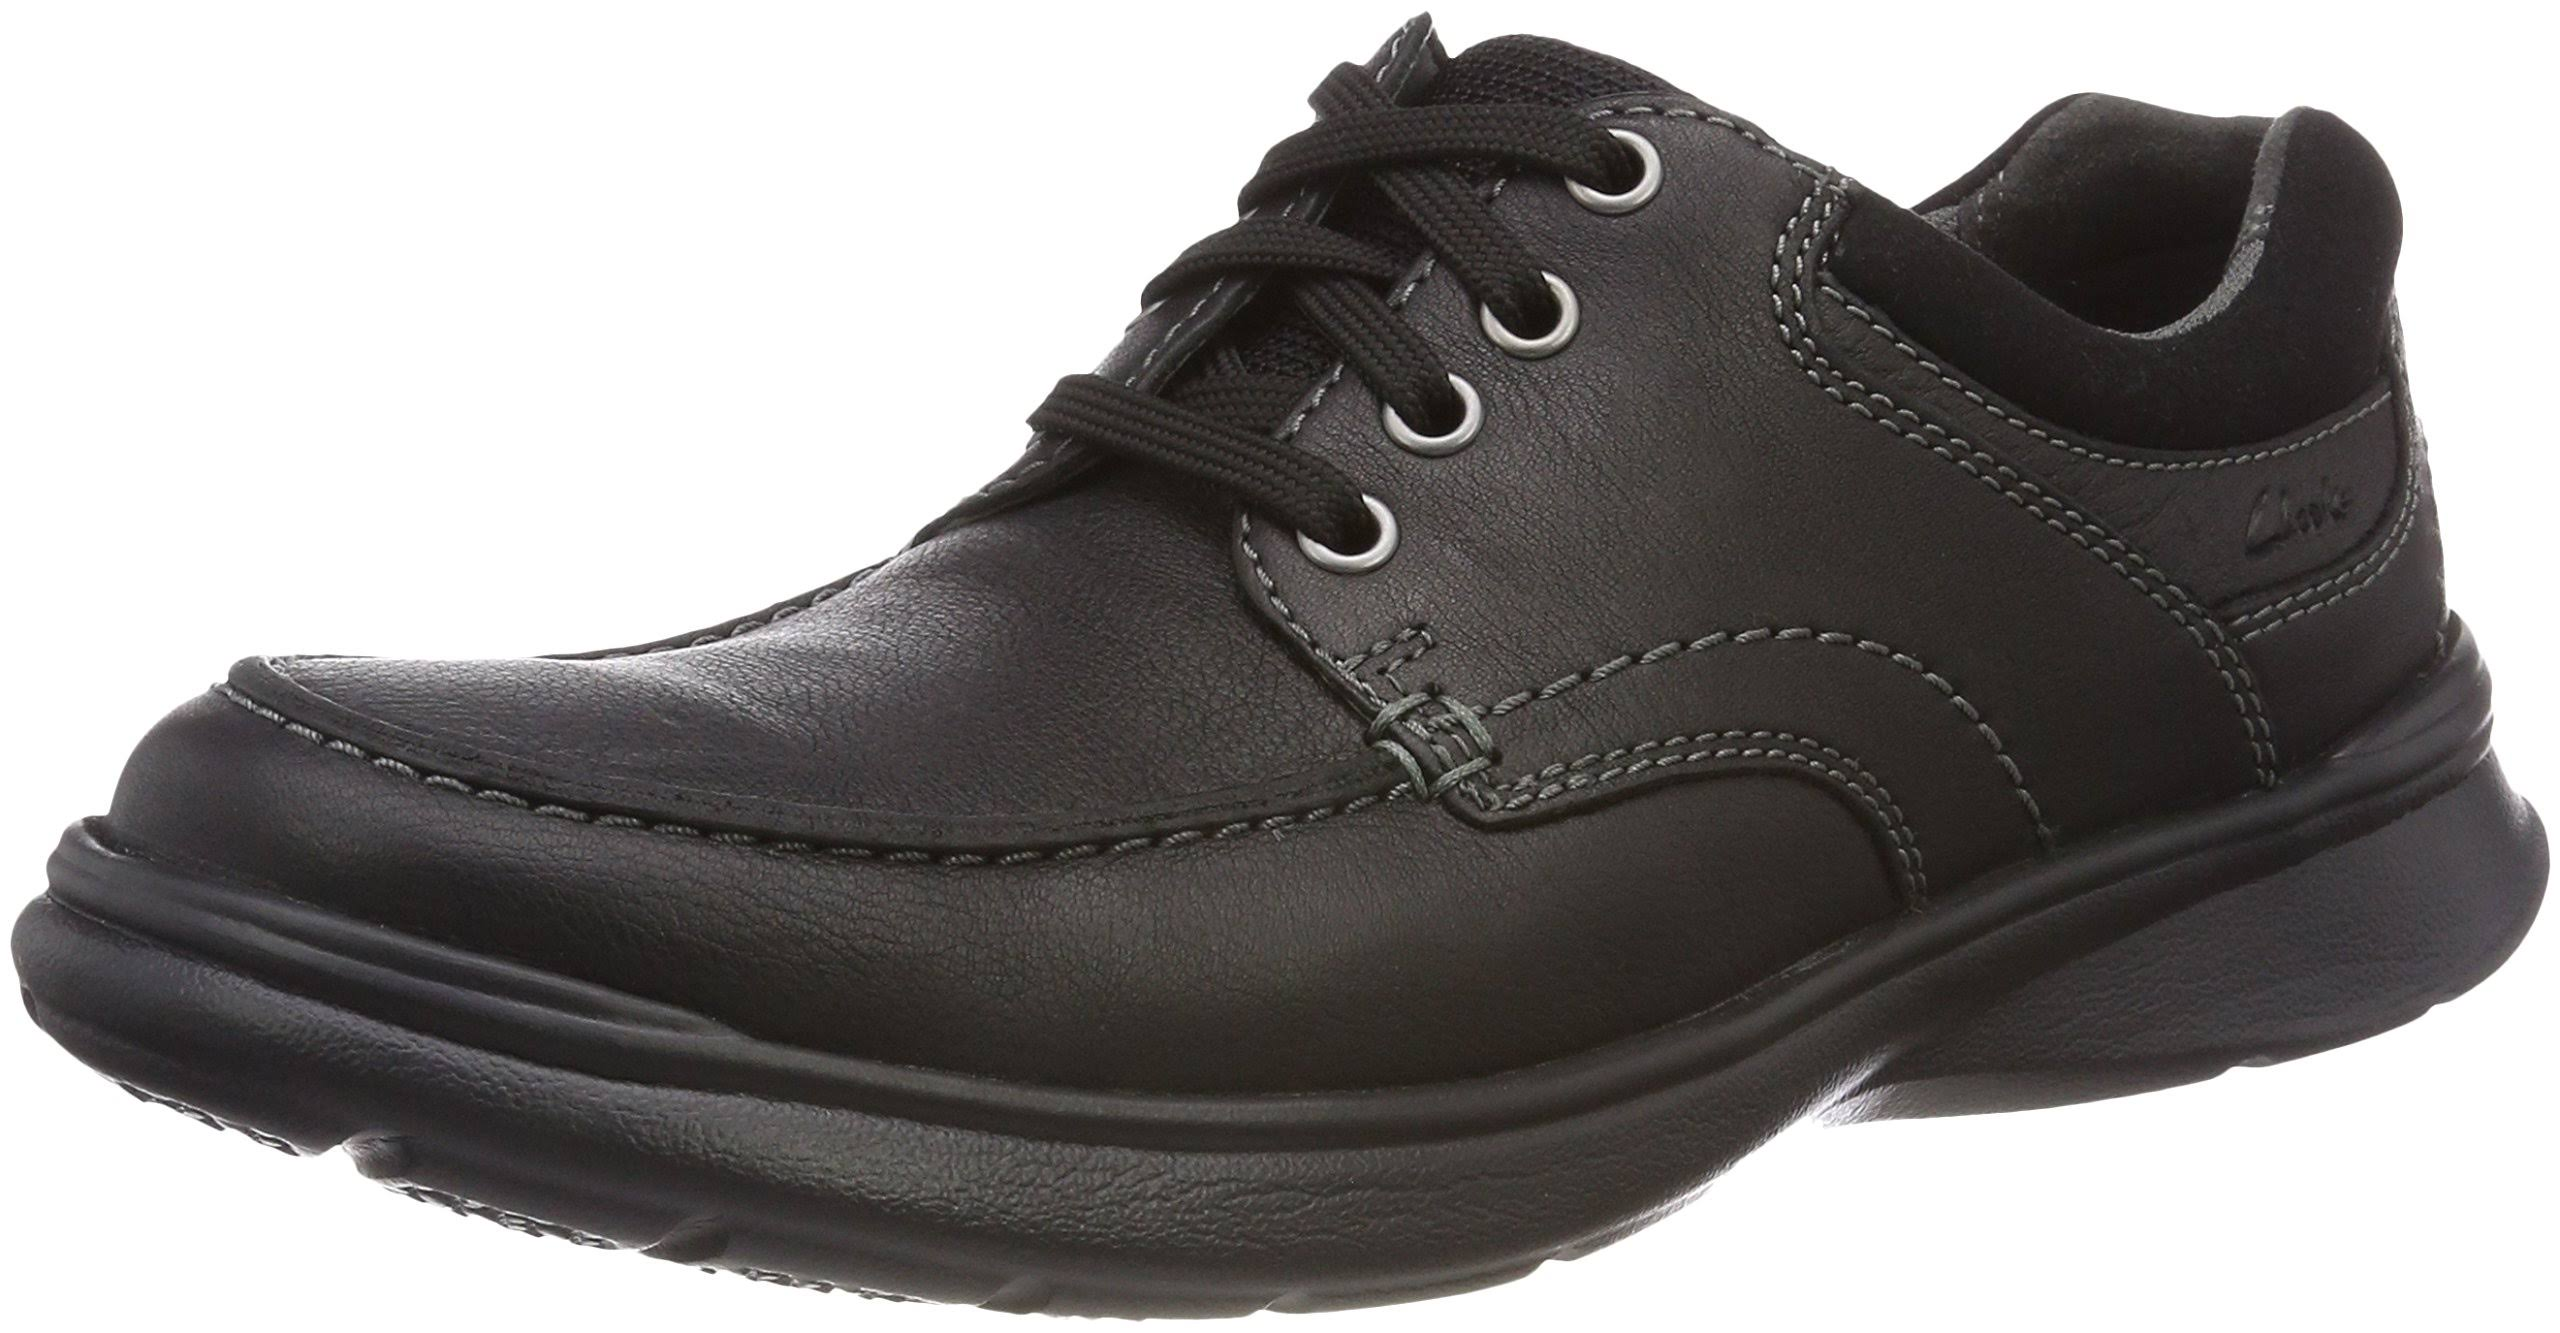 Glatt Schwarz EdgeBlack Leder Oily Cotrell Dimensioni10 Clarks Leather Uk 29HEDIW